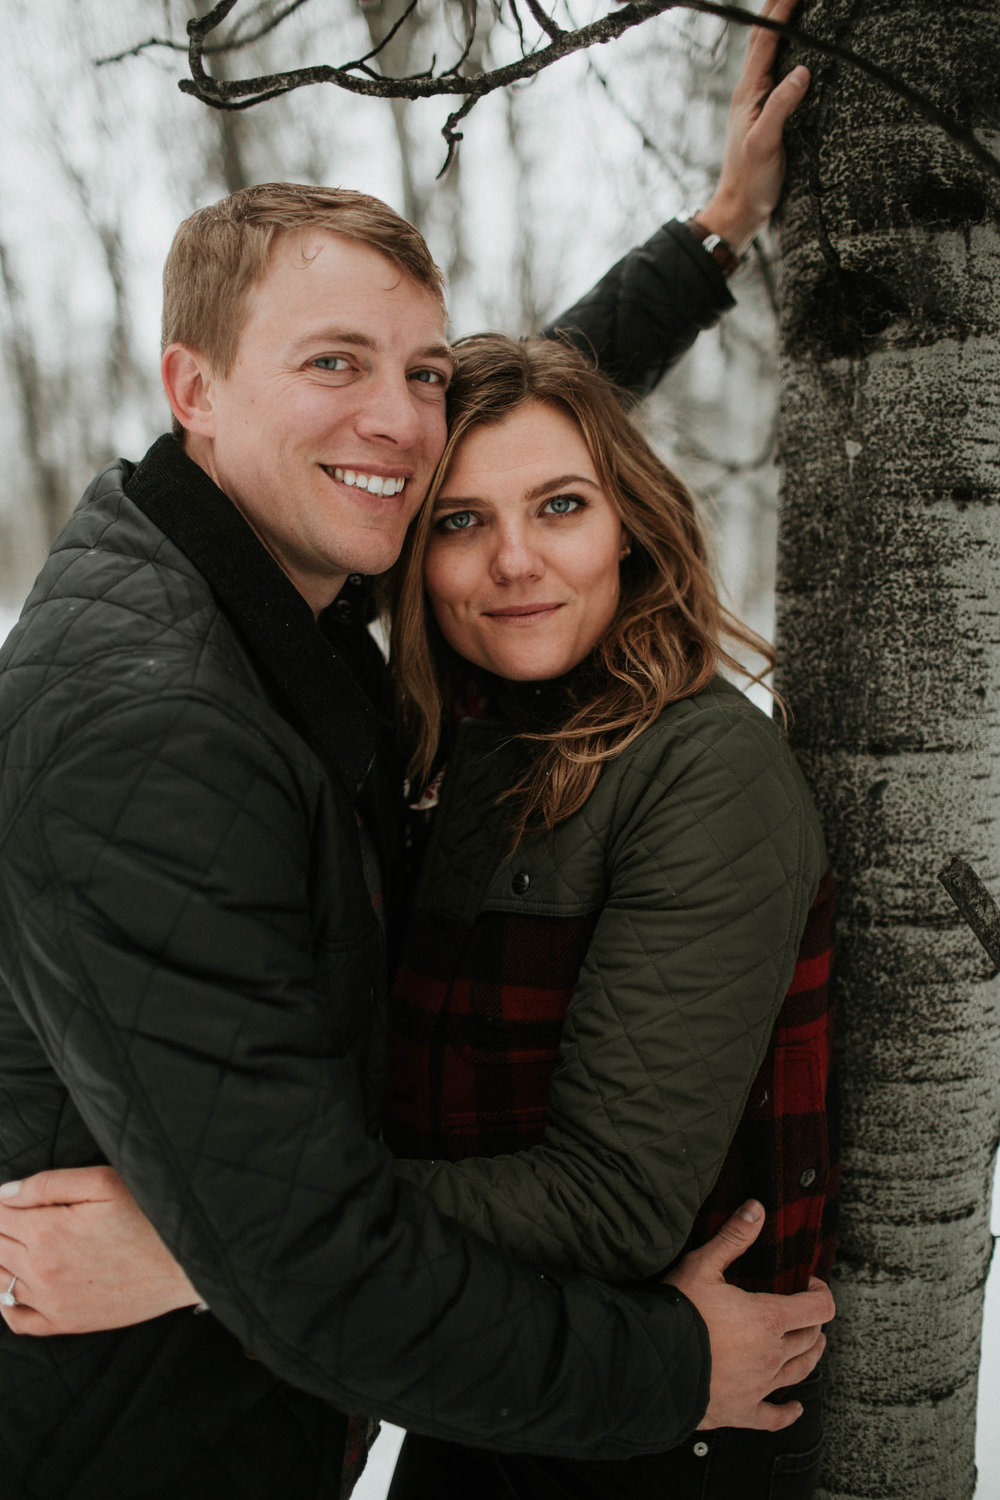 sun-valley-engagement-christinemariephoto-11.jpg